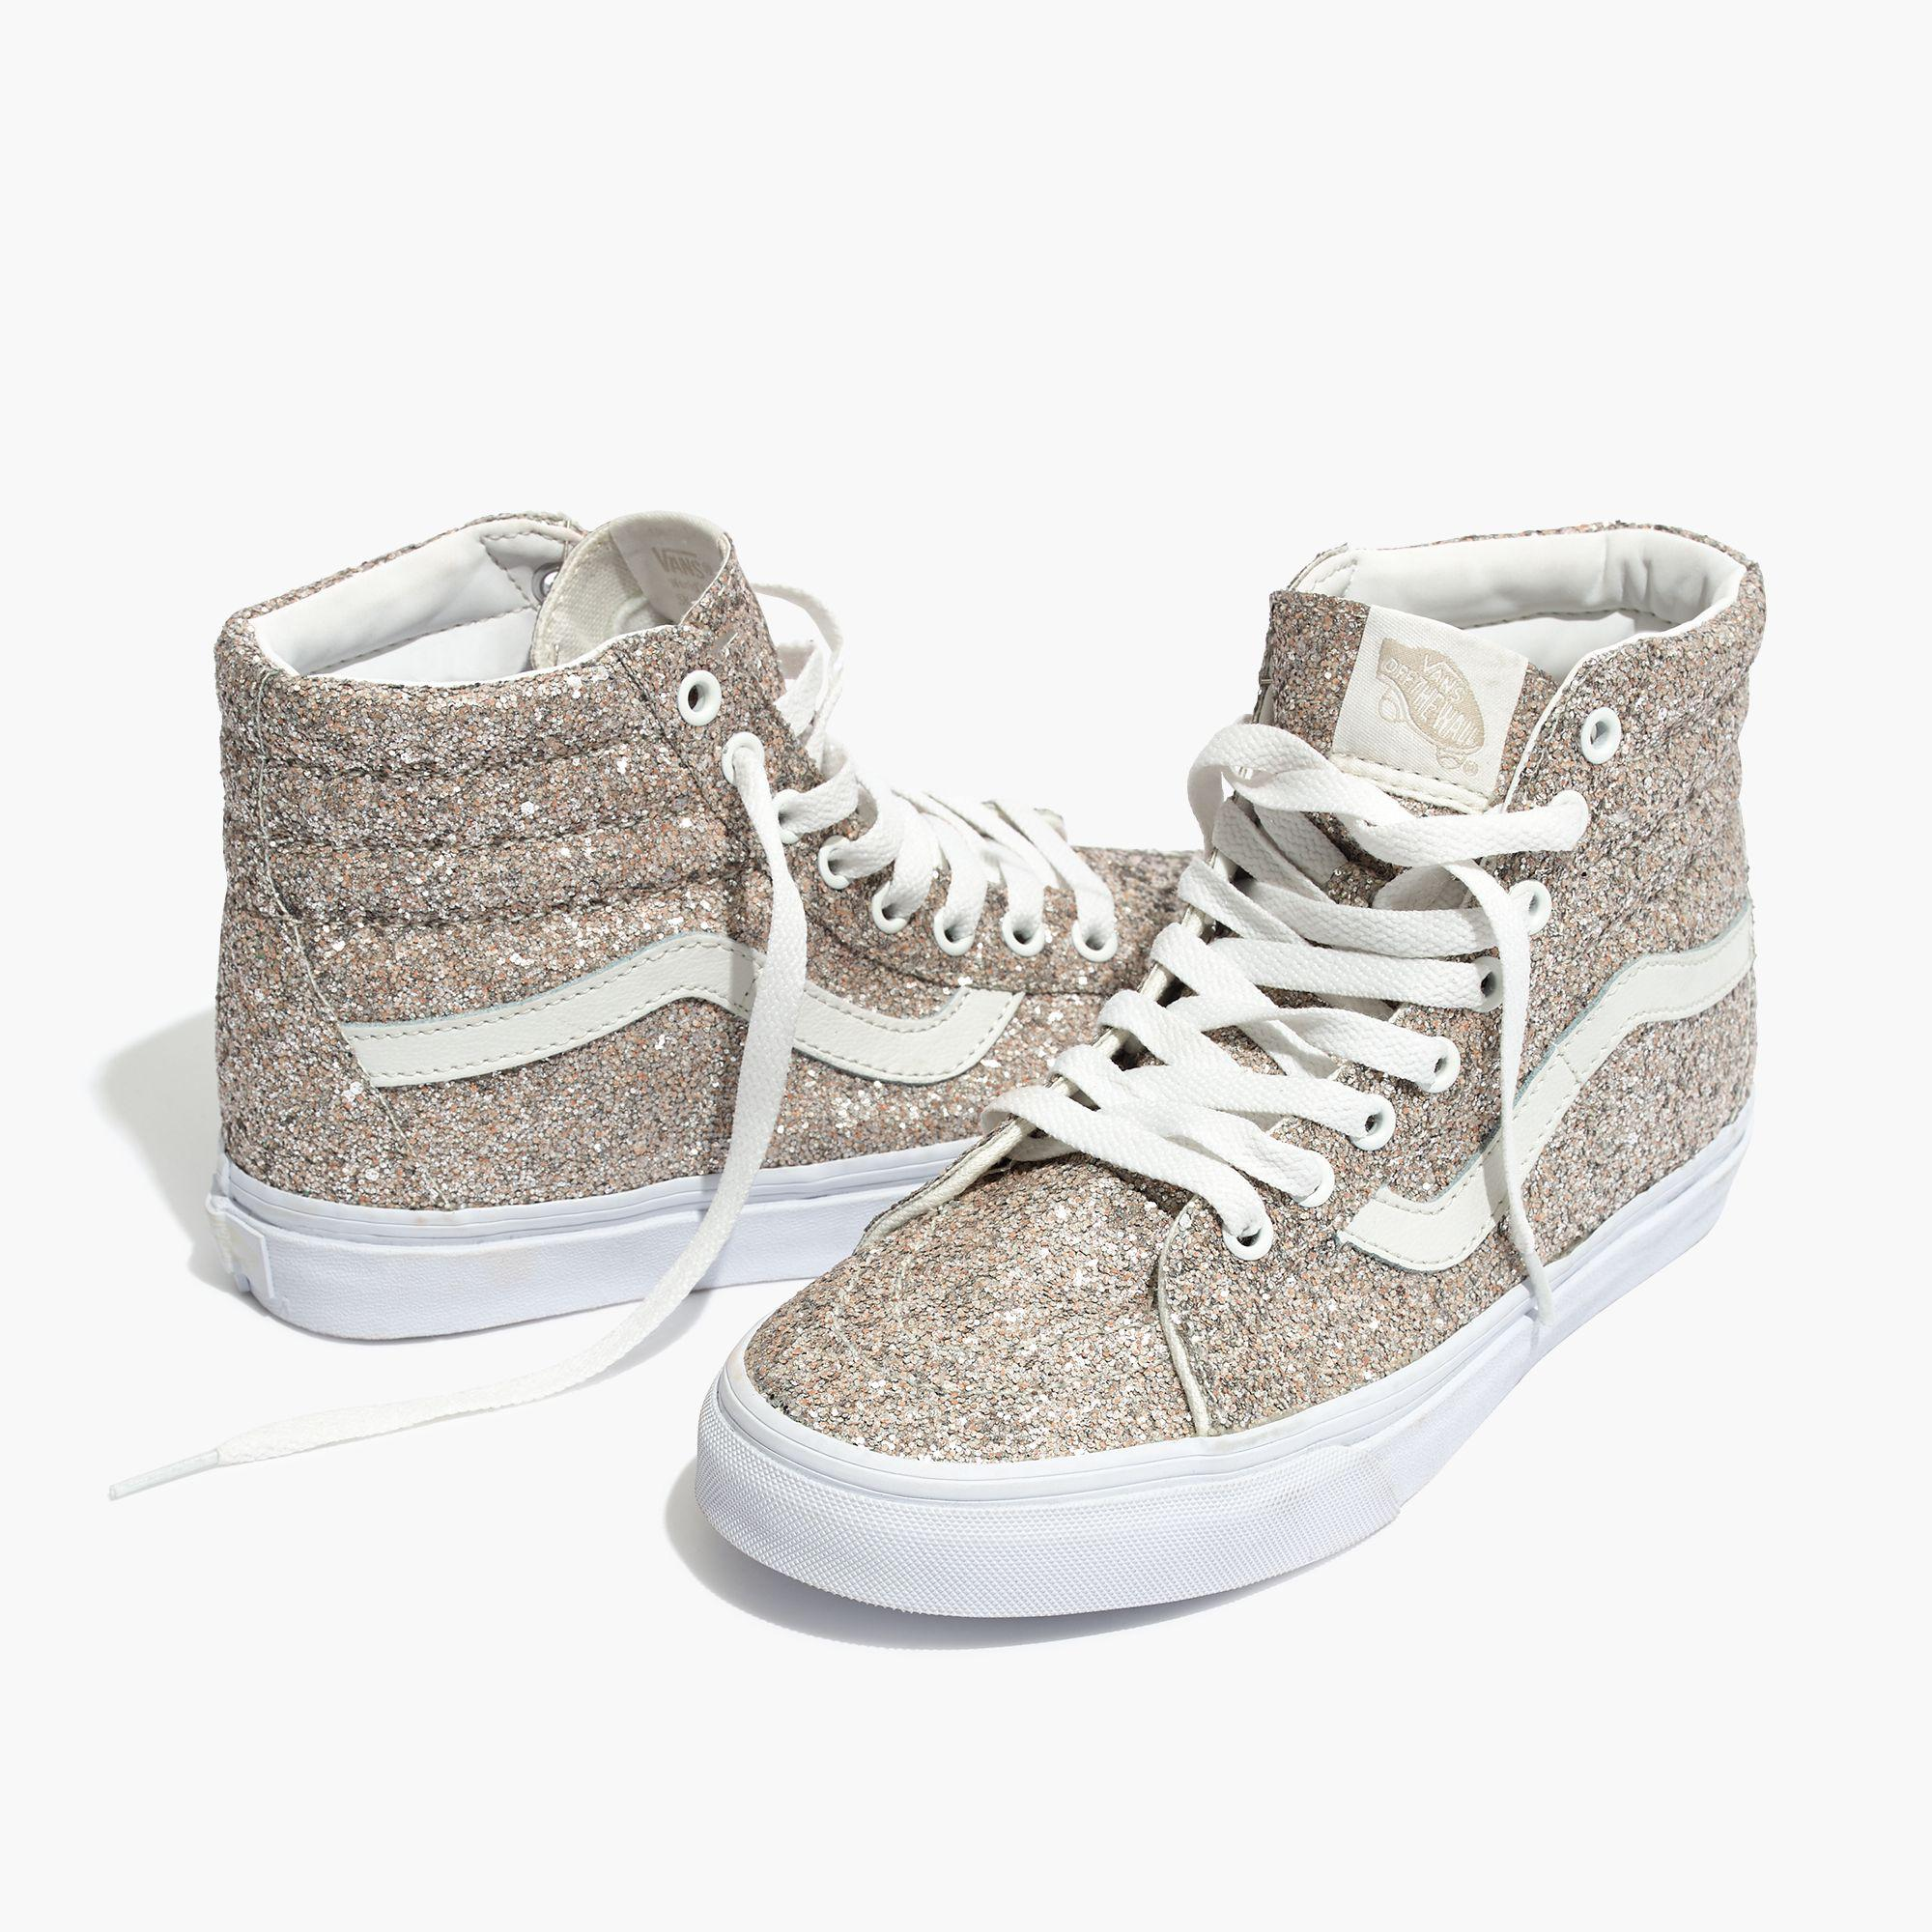 a3a5223989 Lyst - Madewell Vans® Unisex Sk8-hi High-top Sneakers In Glitter